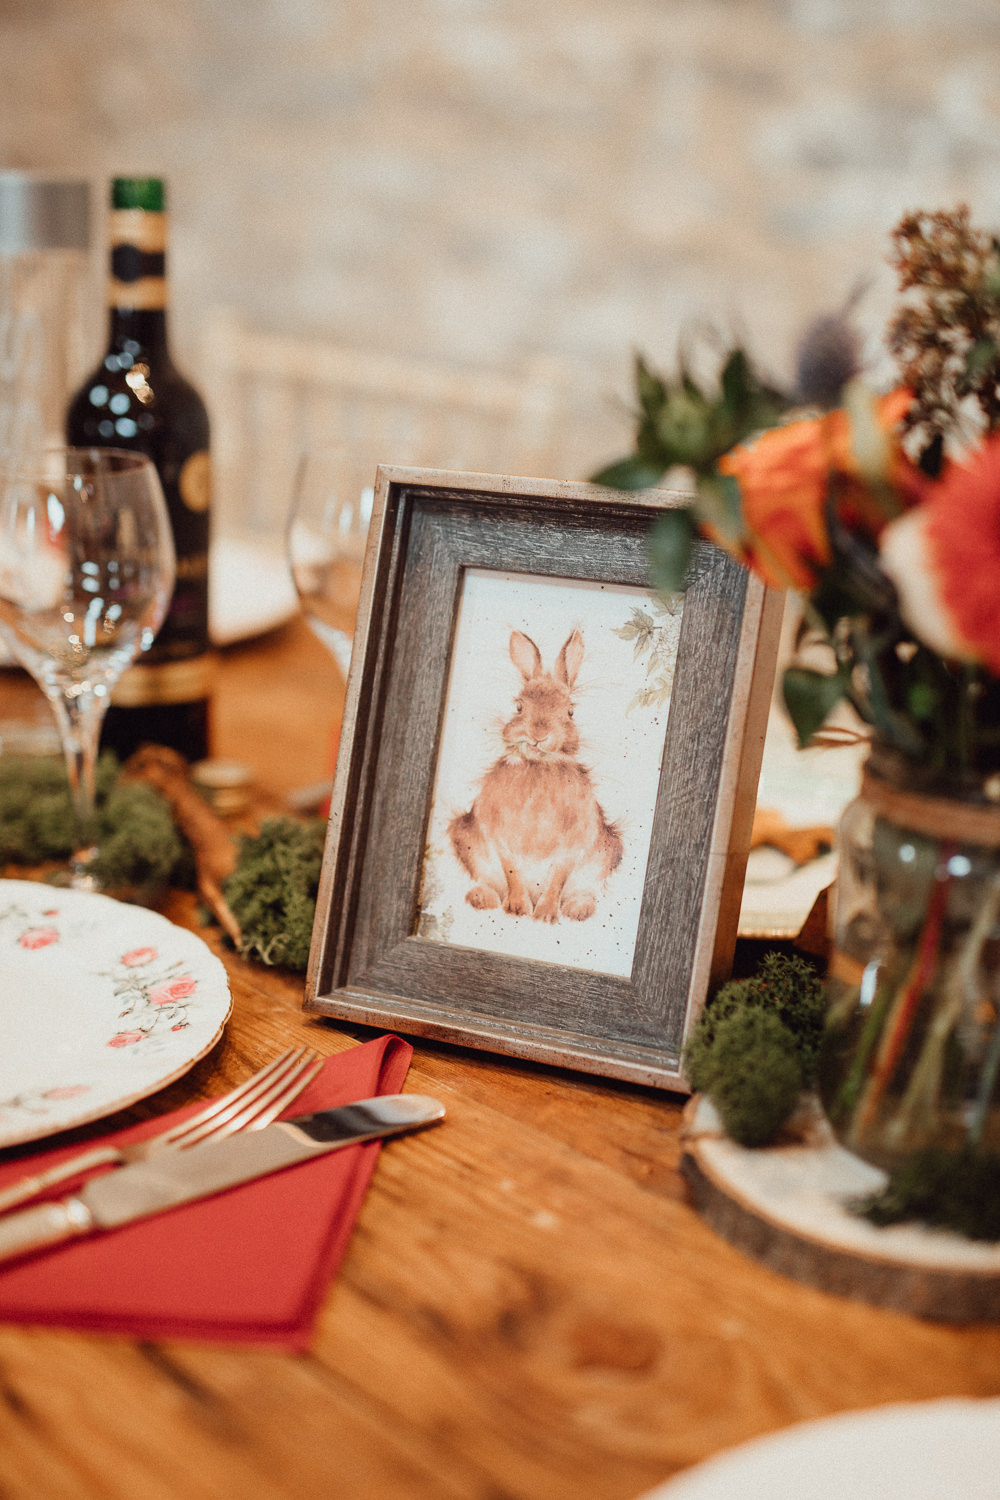 Rabbit Table Name Illustration Oxleaze Barn Wedding Emily and Steve Photography